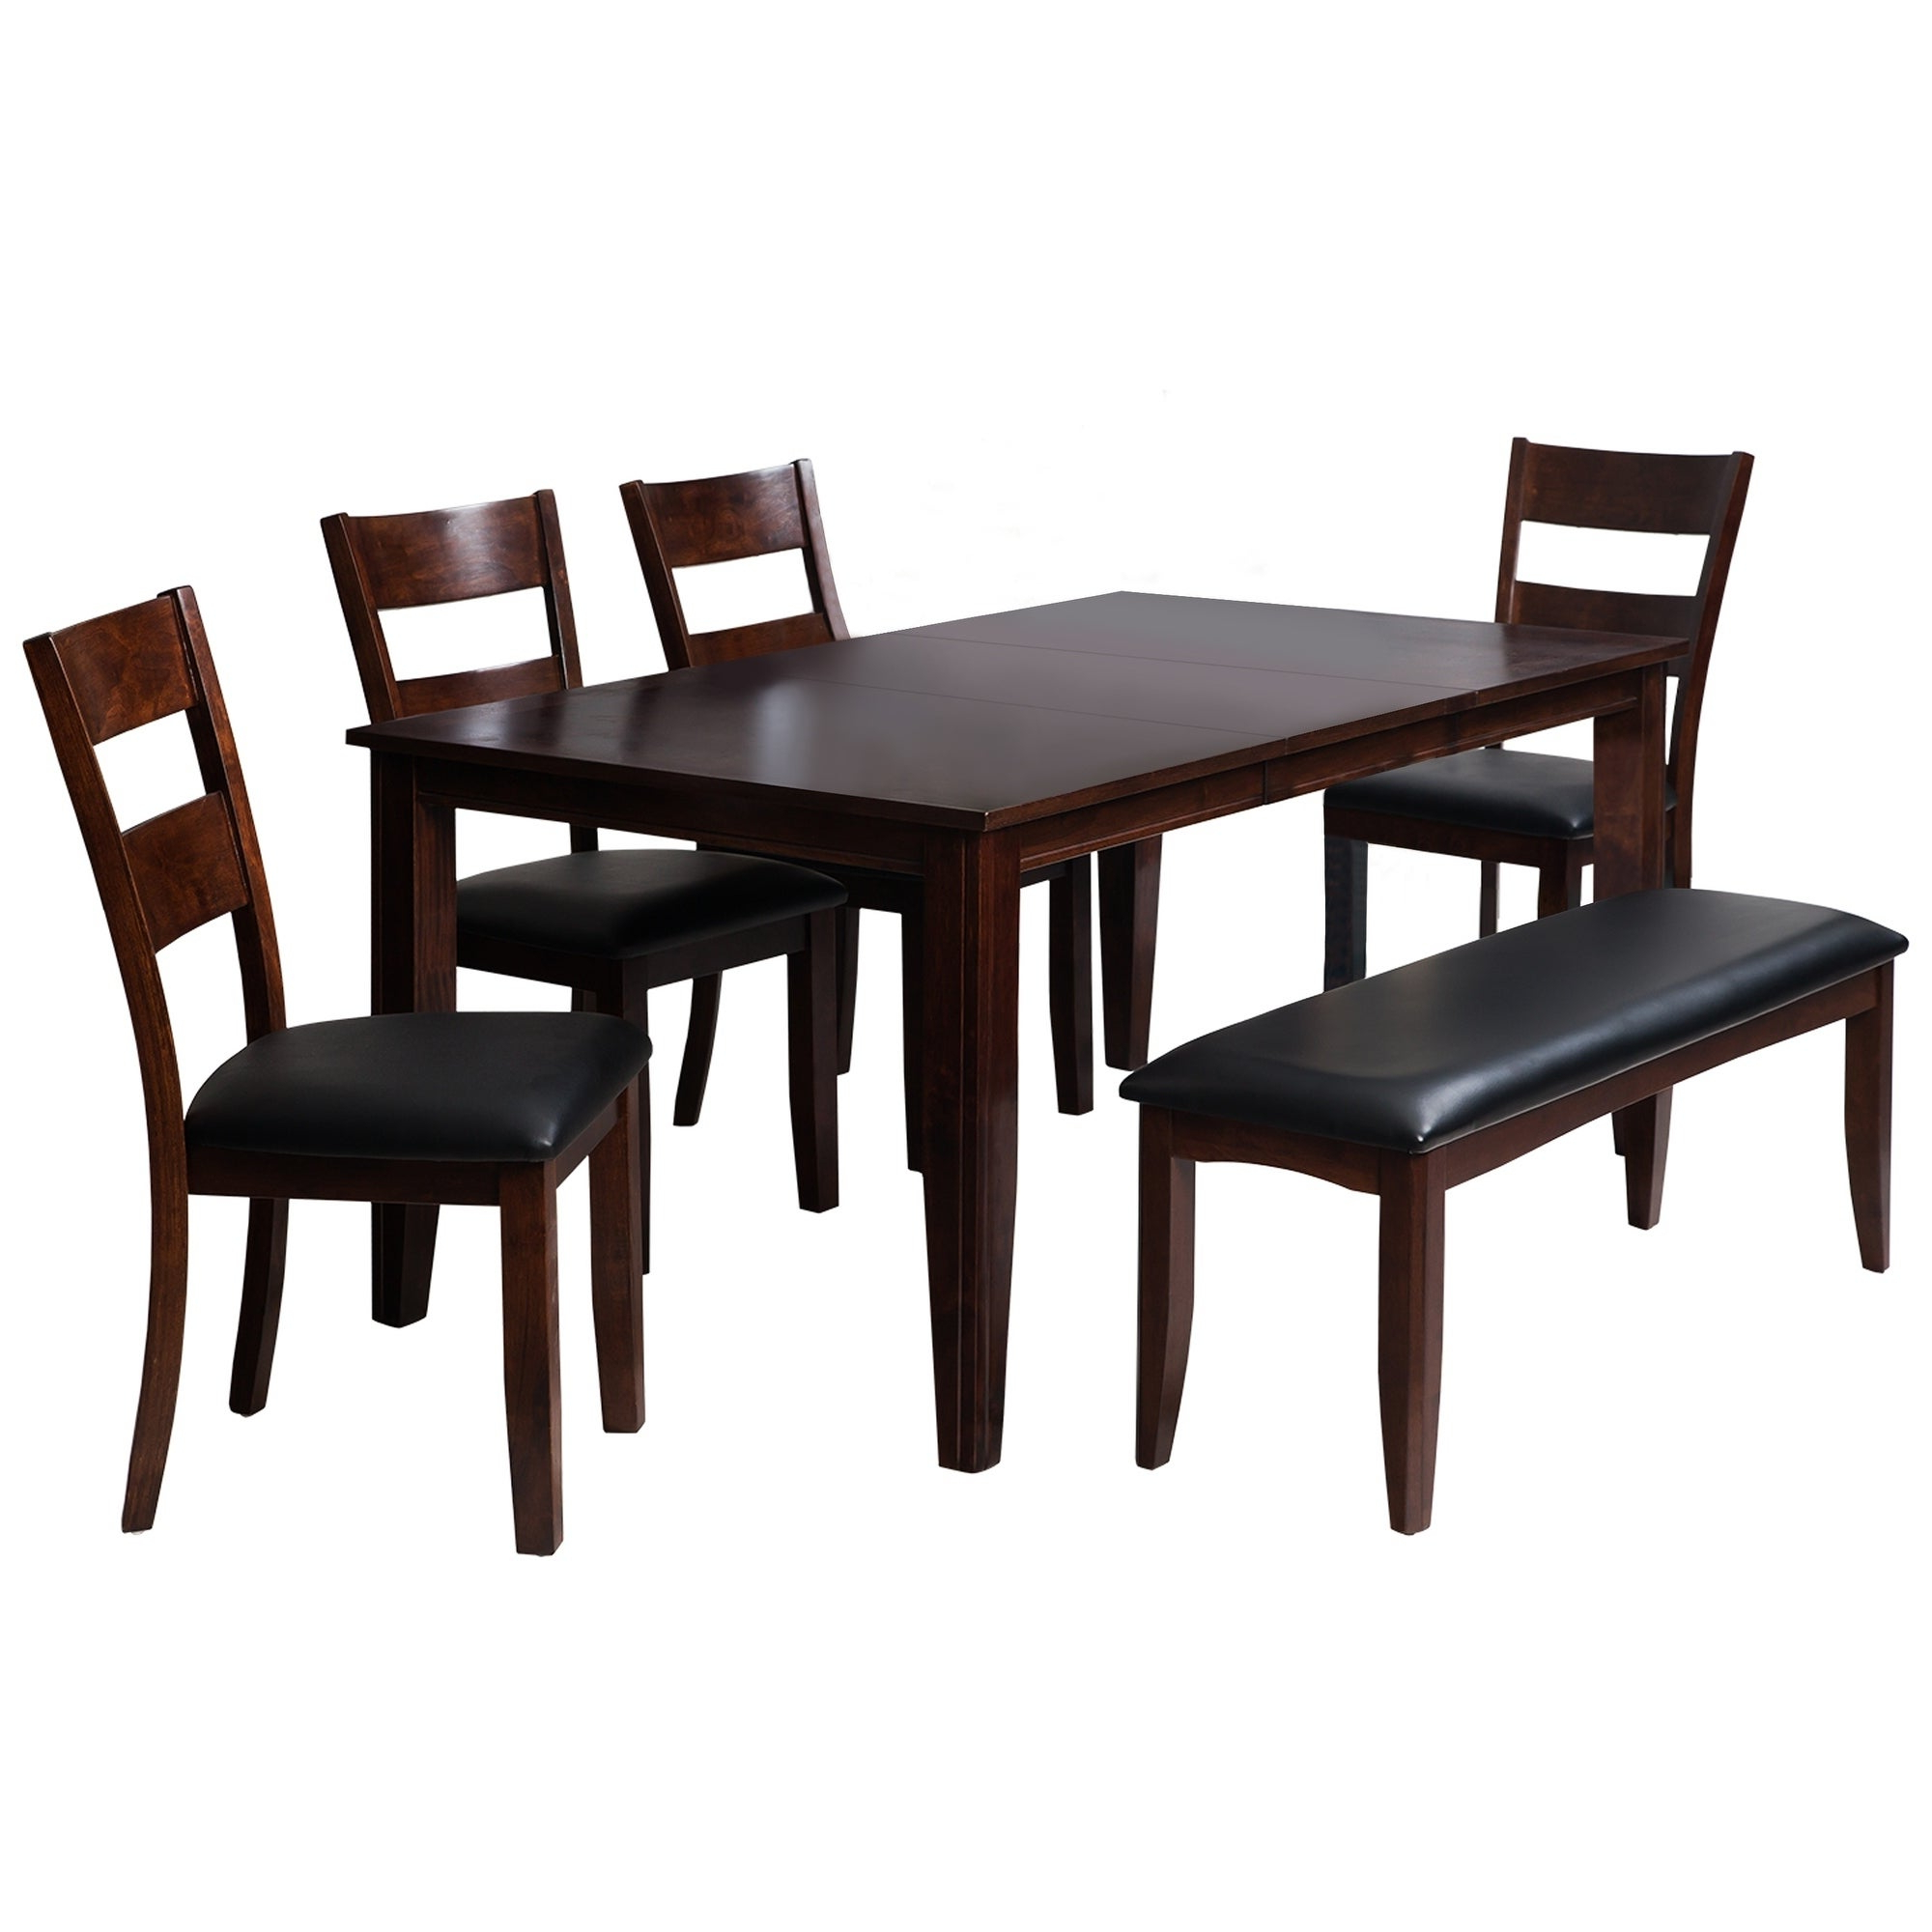 """Shop 6 Piece Solid Wood Dining Set """"aden"""", Modern Kitchen Table Set Pertaining To Fashionable Adan 5 Piece Solid Wood Dining Sets (Set Of 5) (View 21 of 25)"""